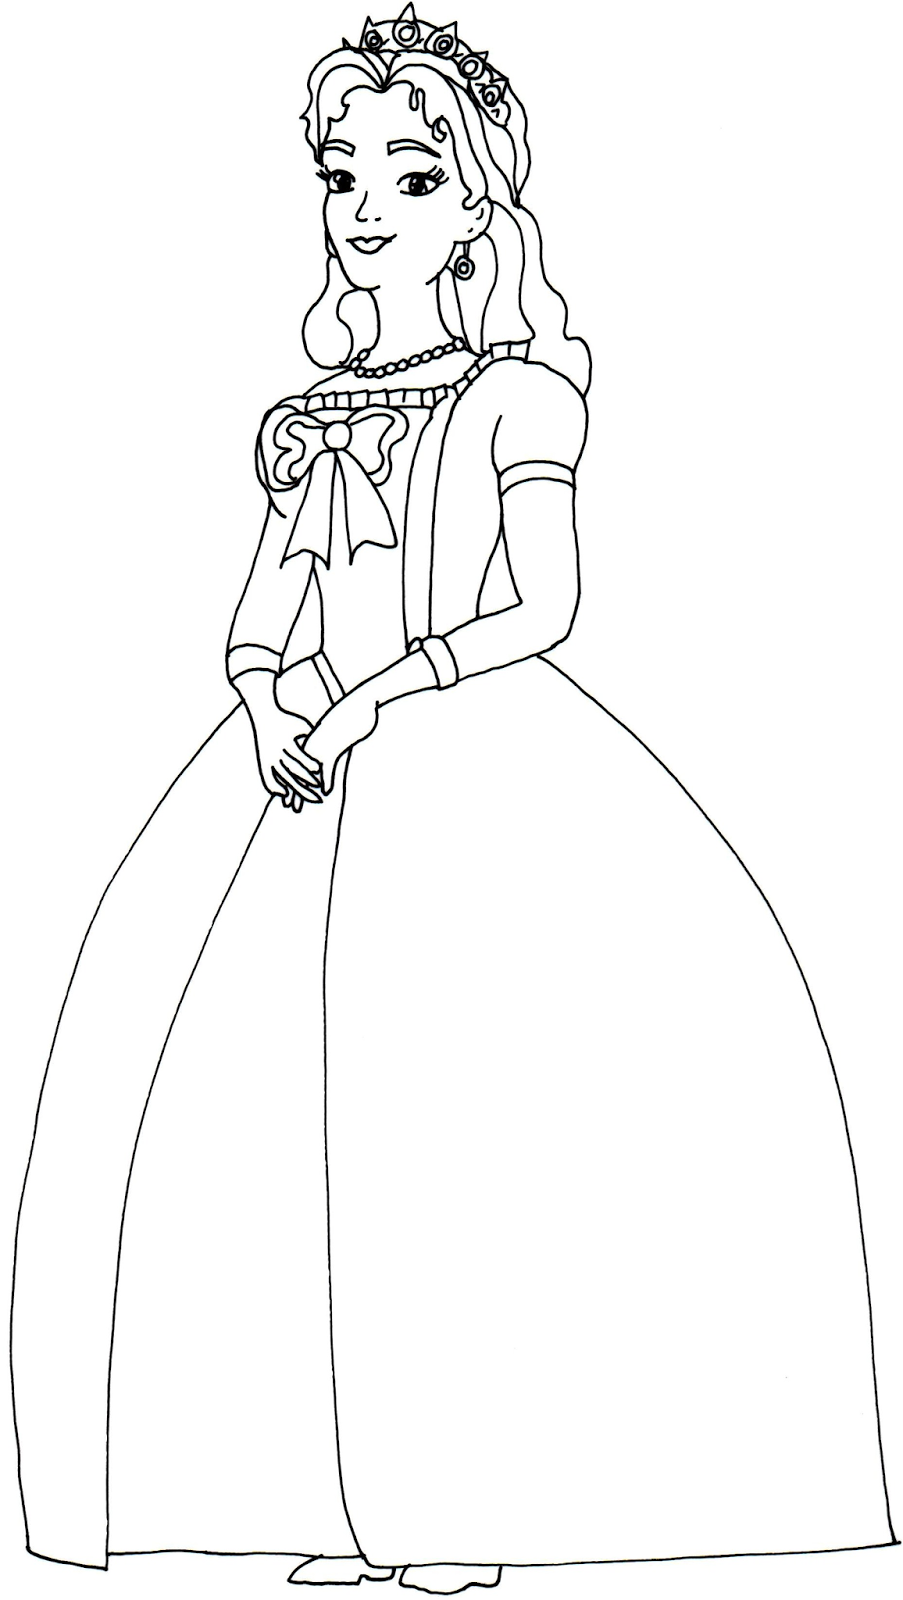 Queen coloring page high quality coloring pages